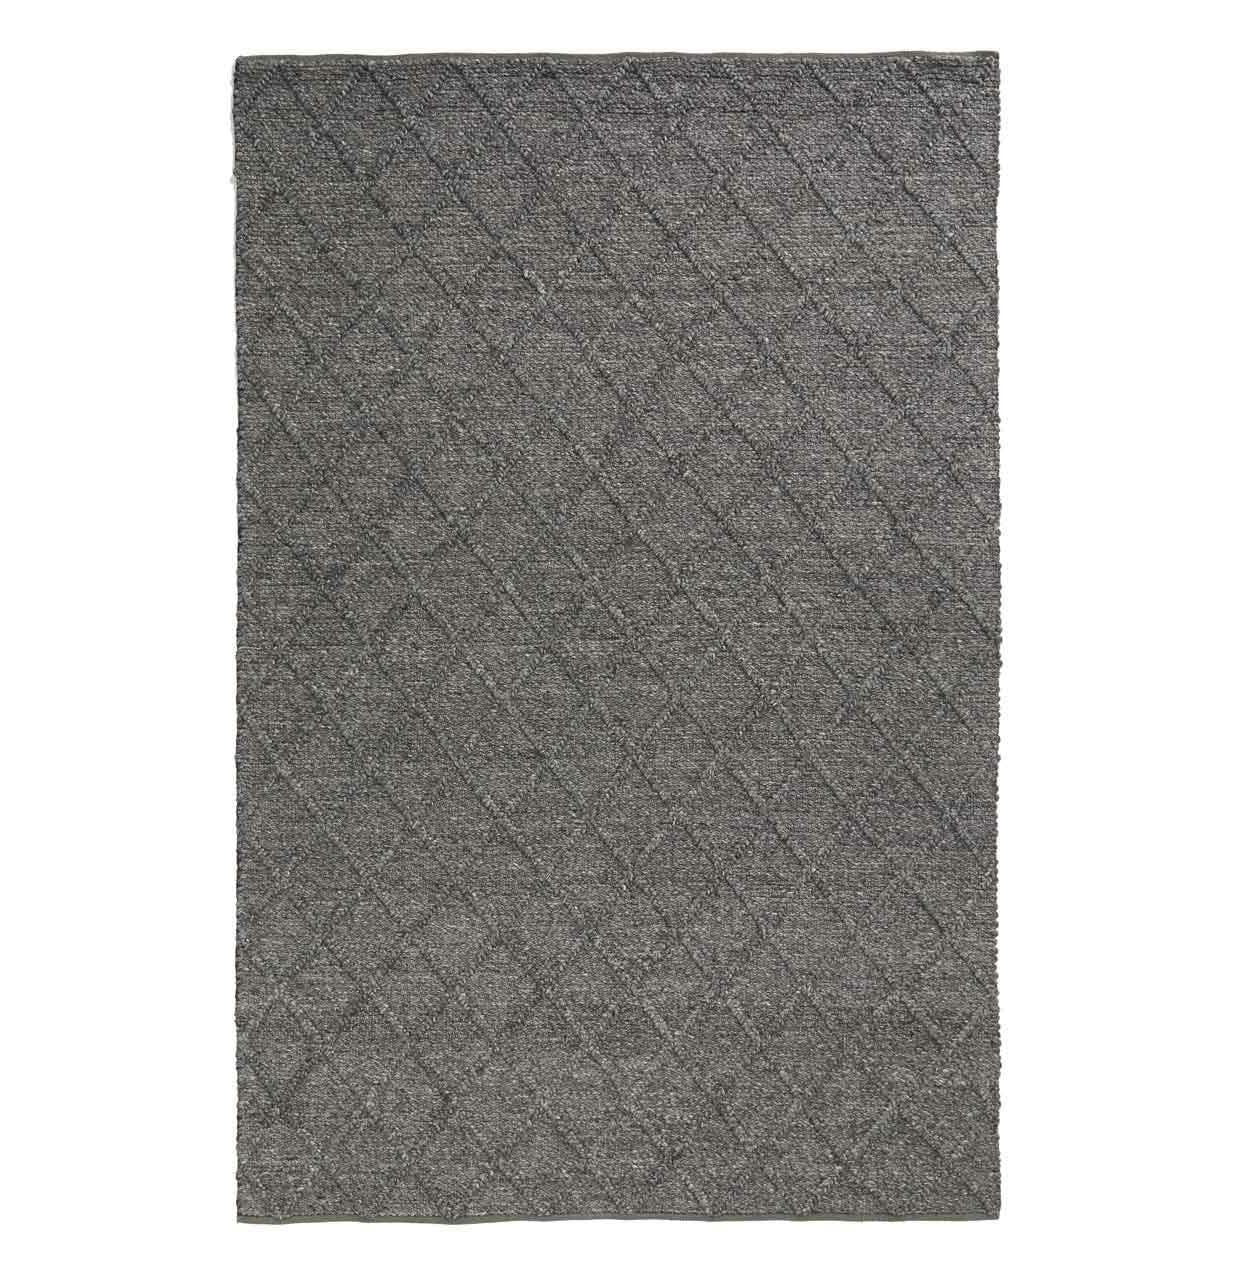 Weave home Mitre floor rug in Domain Gallery